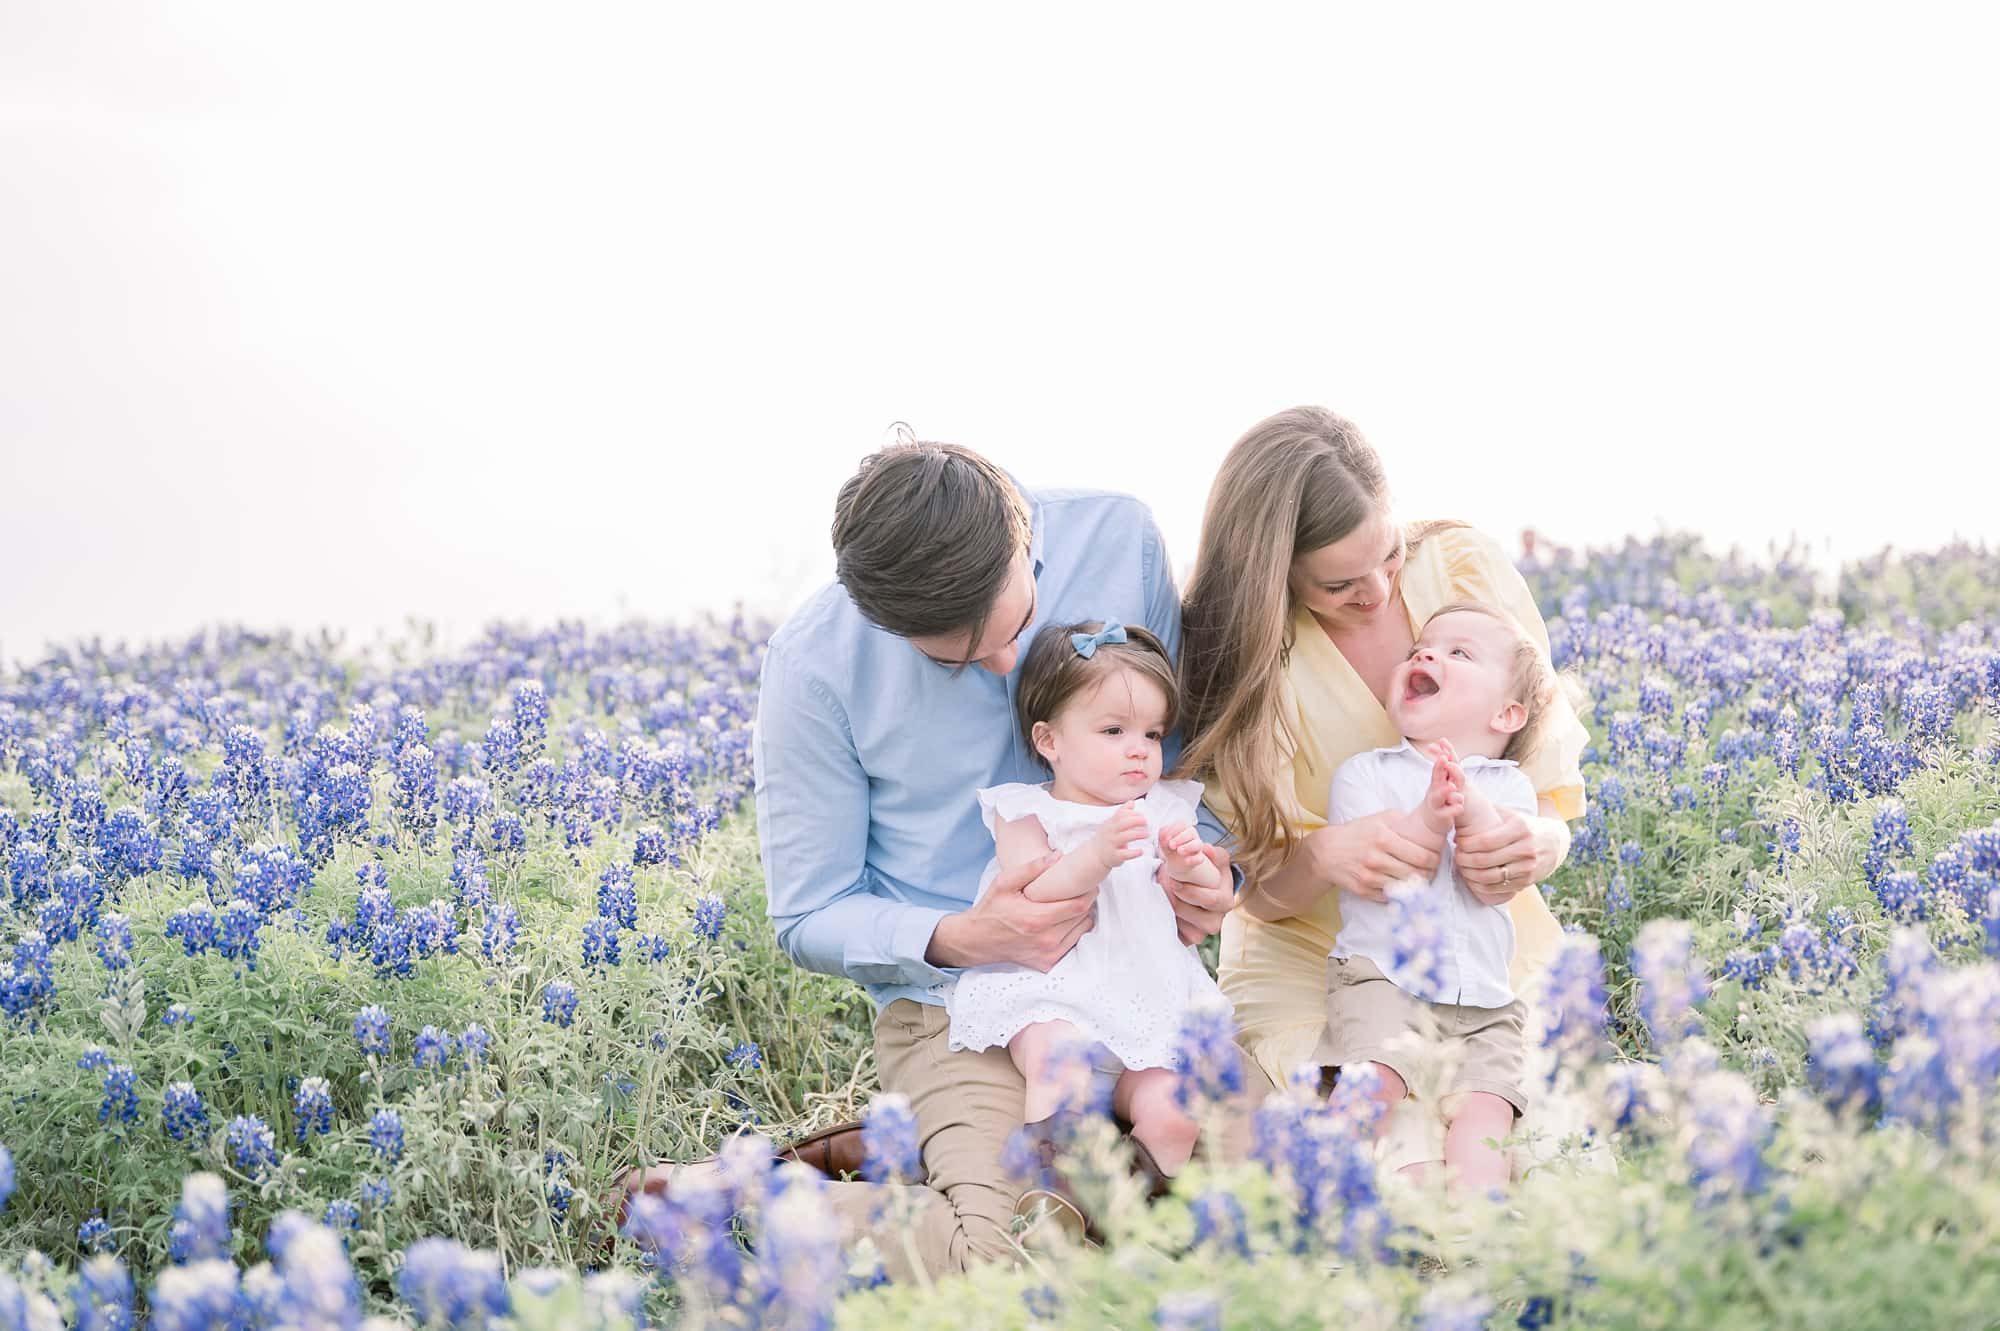 Mom and Dad sitting with twins in bluebonnet field. Photo by Aimee Hamilton Photography.